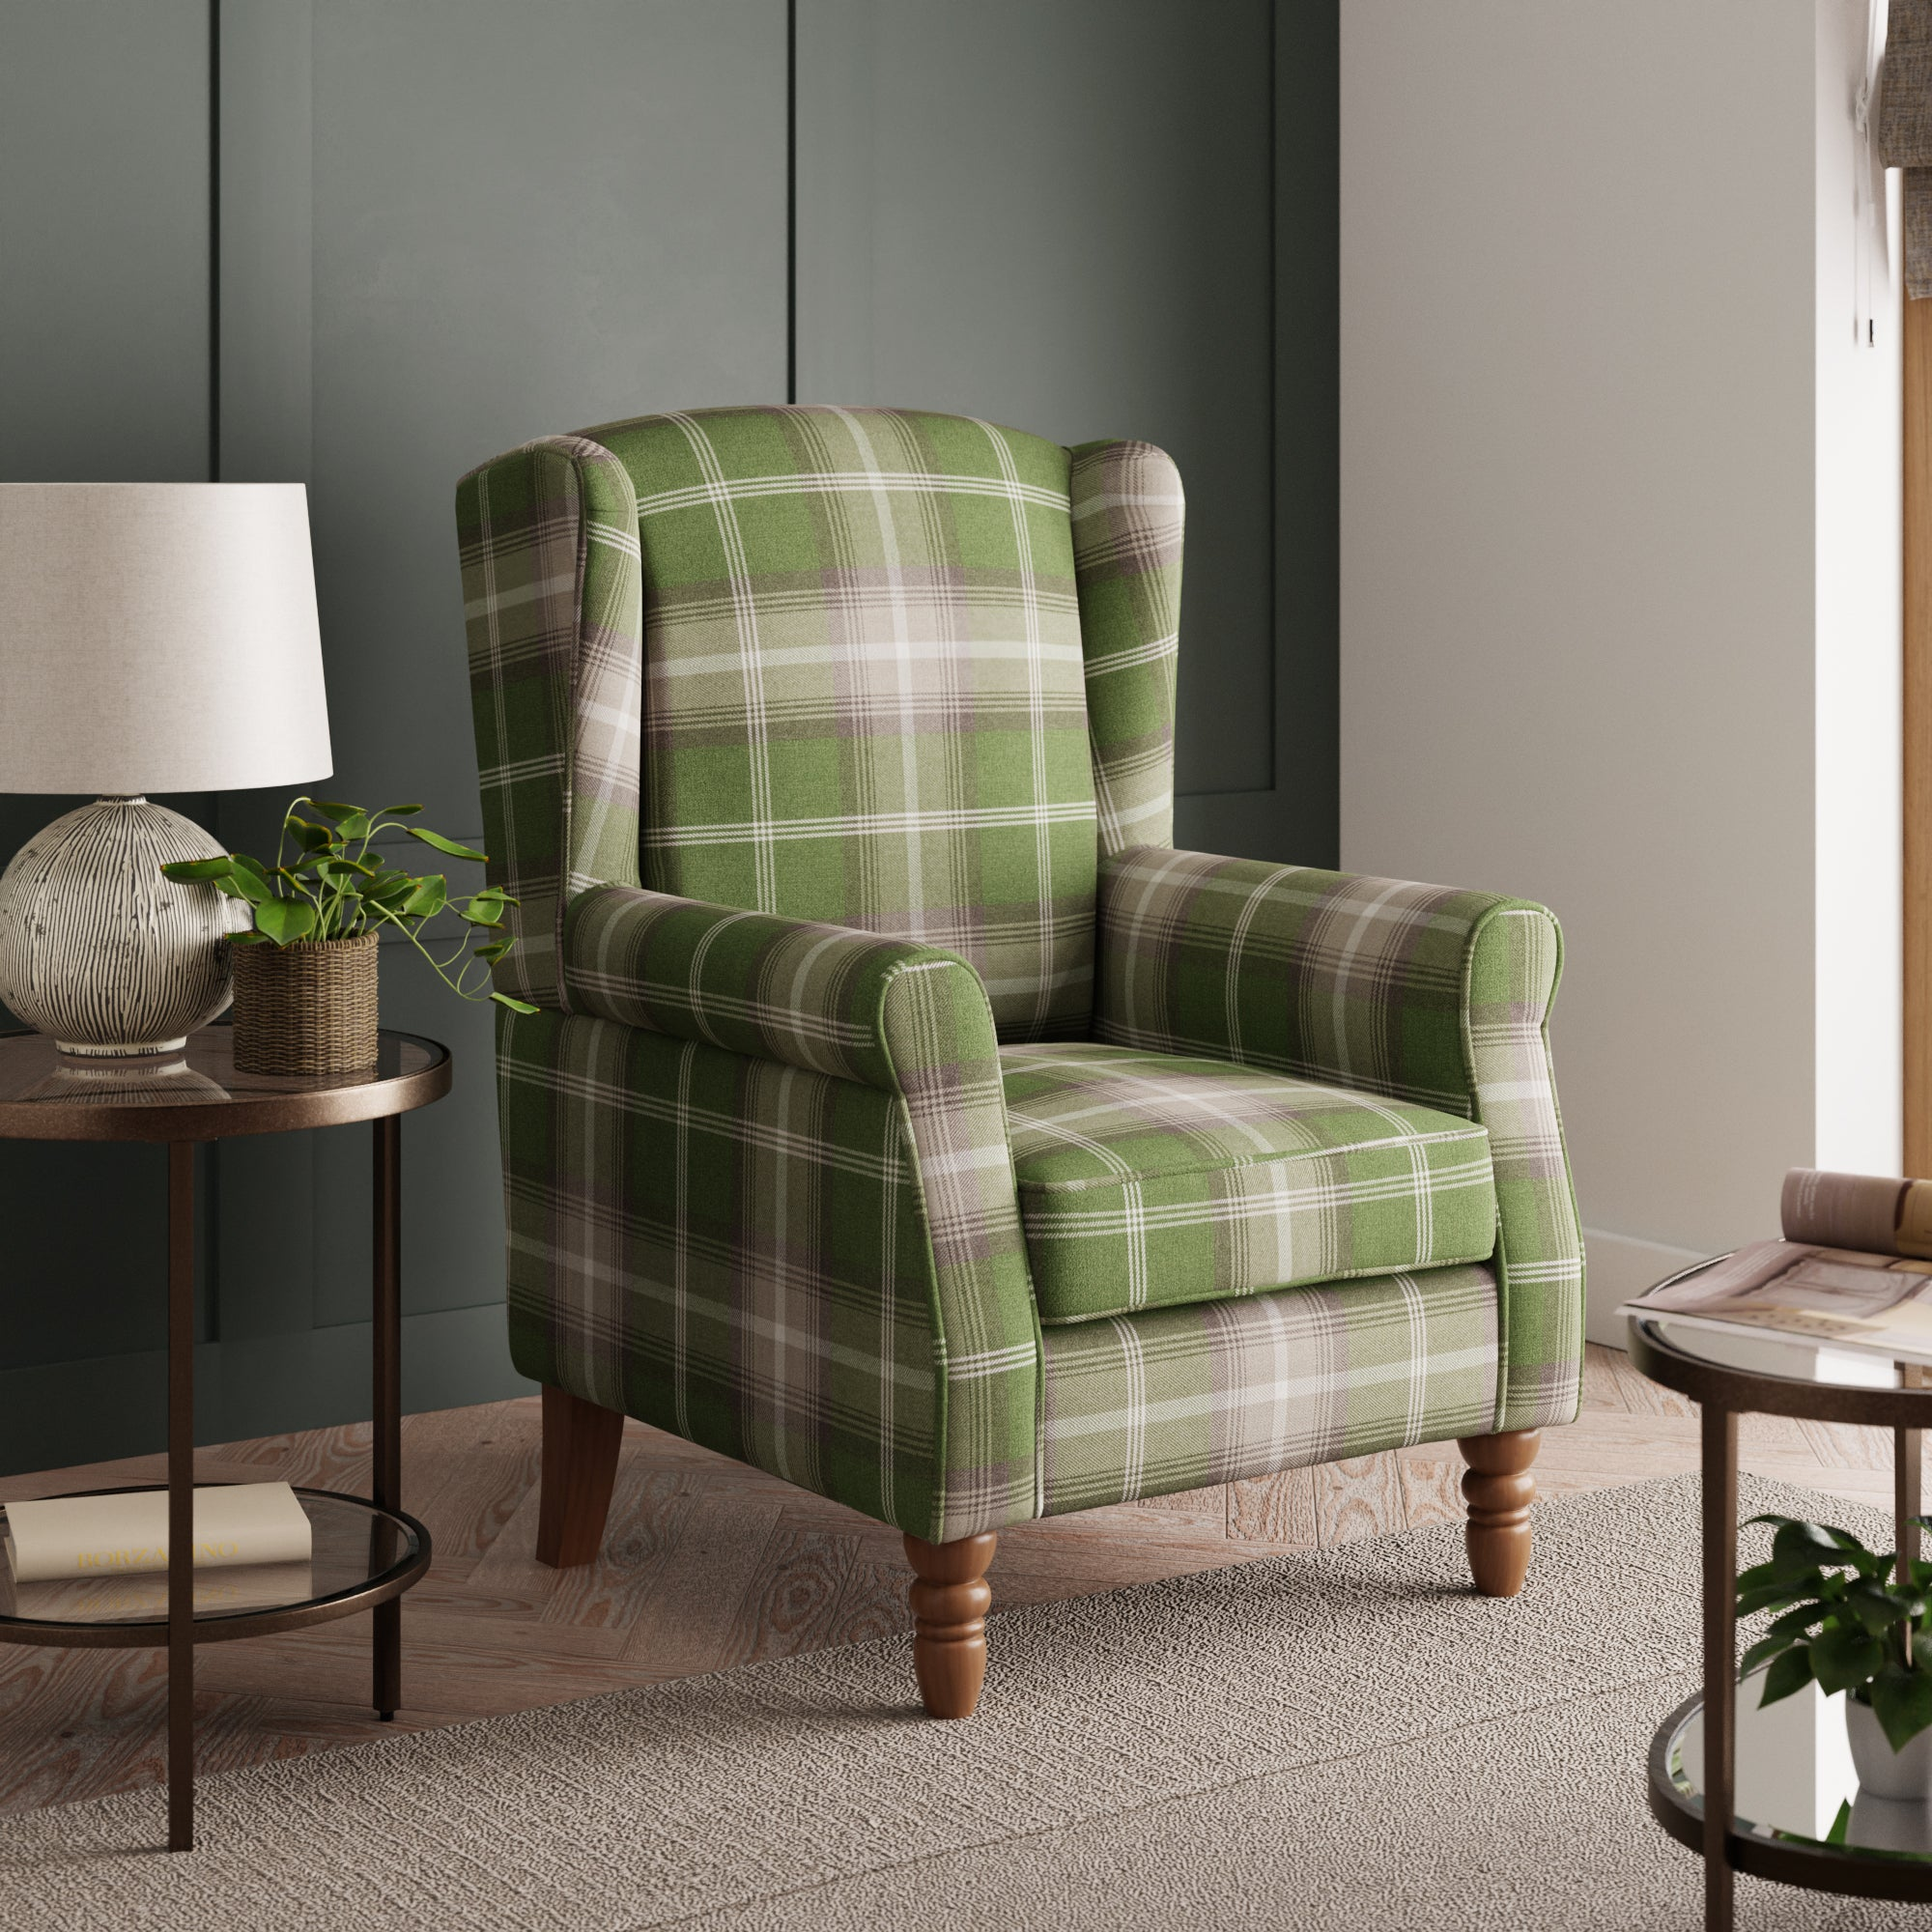 Oswald Check Wingback Armchair - Green Green, White and Purple